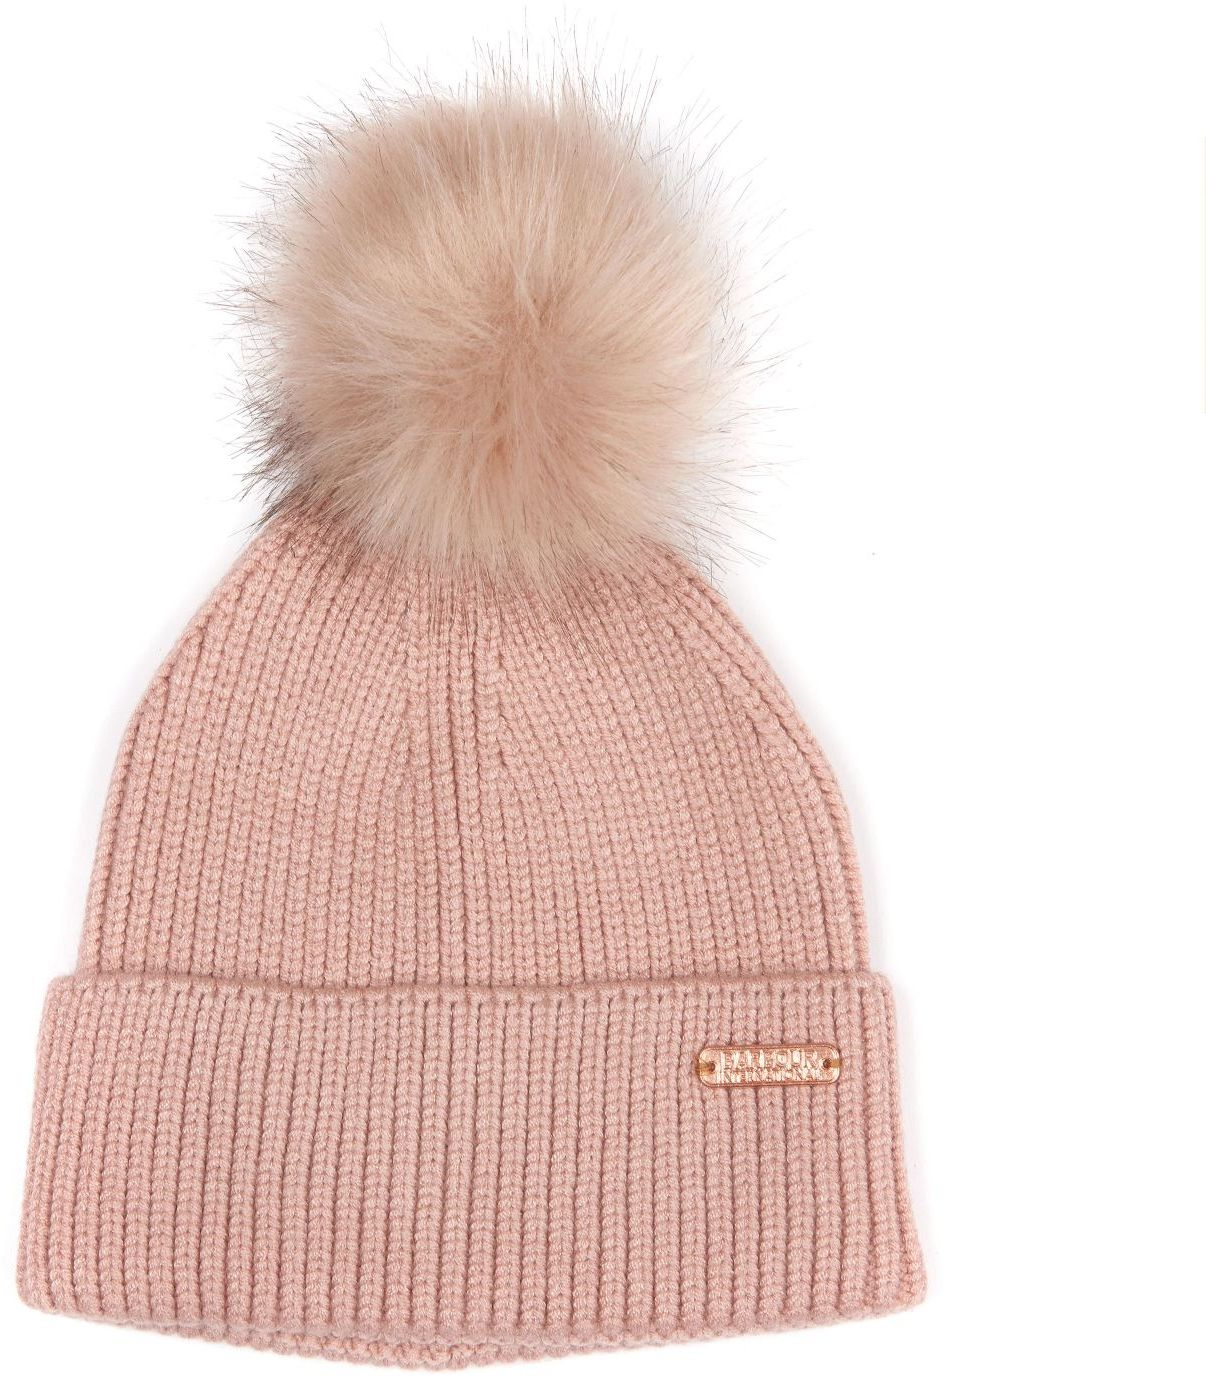 74c6a19640350 Barbour Mallory Pom Beanie Pink - Scarves